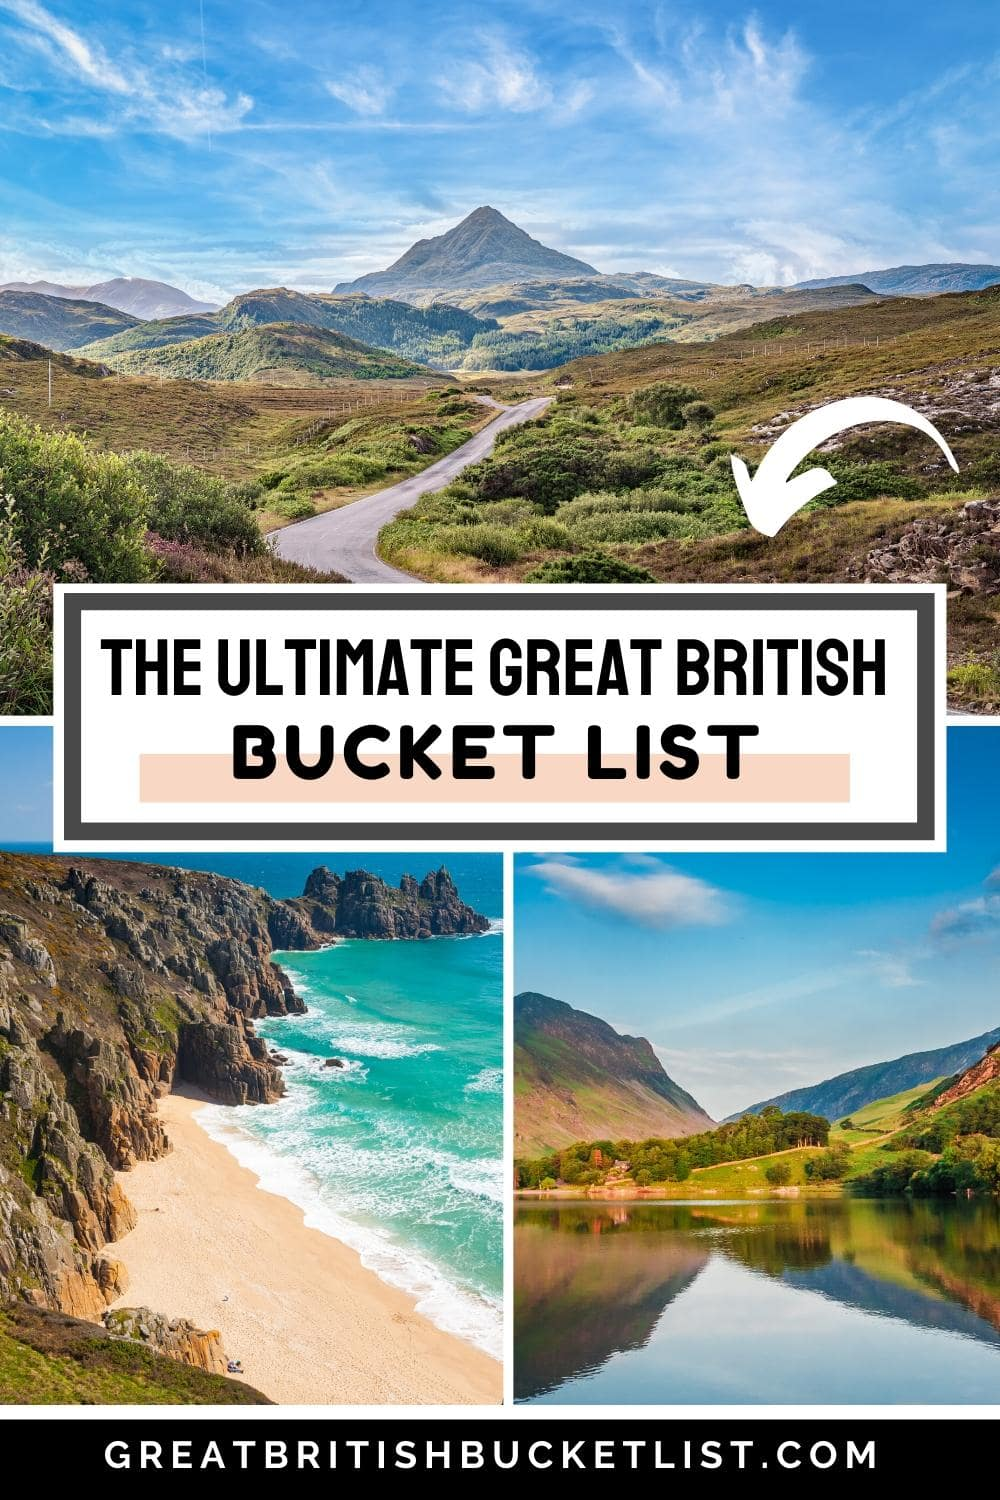 The Best Of Britain - Trips To Add To Your Great British Bucket List